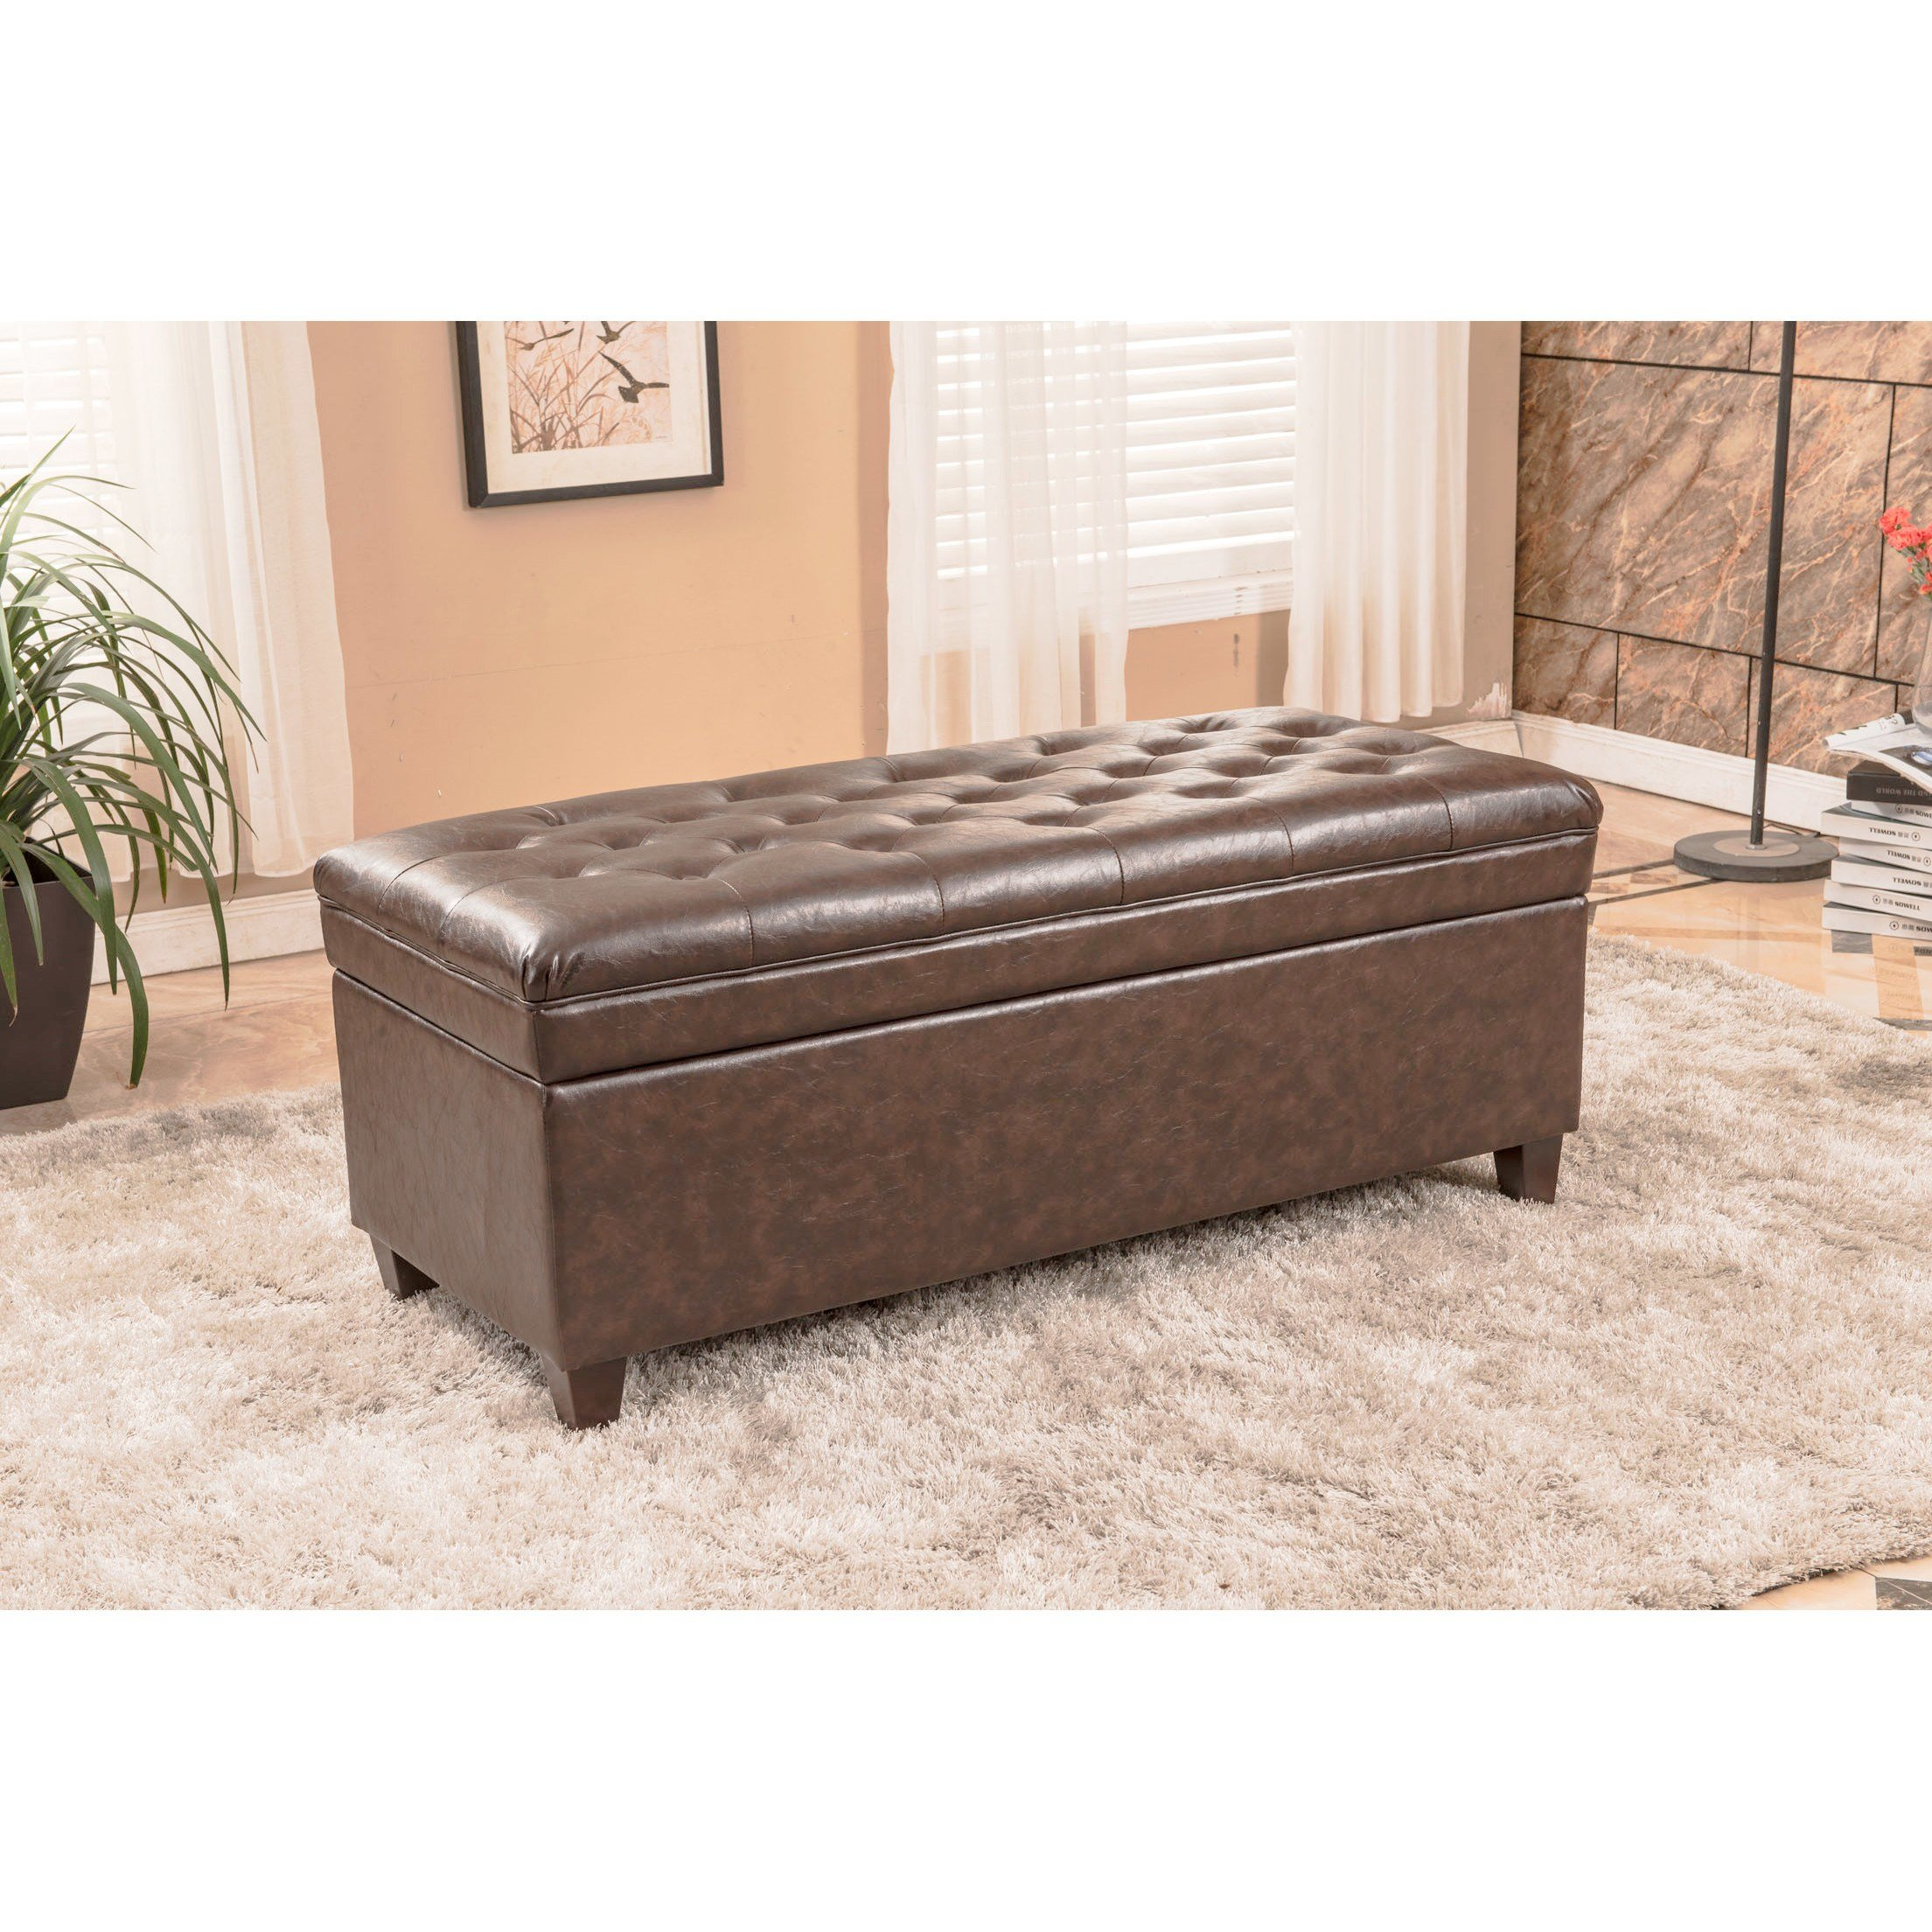 Best Bellasario Collection Upholstered Storage Bedroom Bench With Pictures